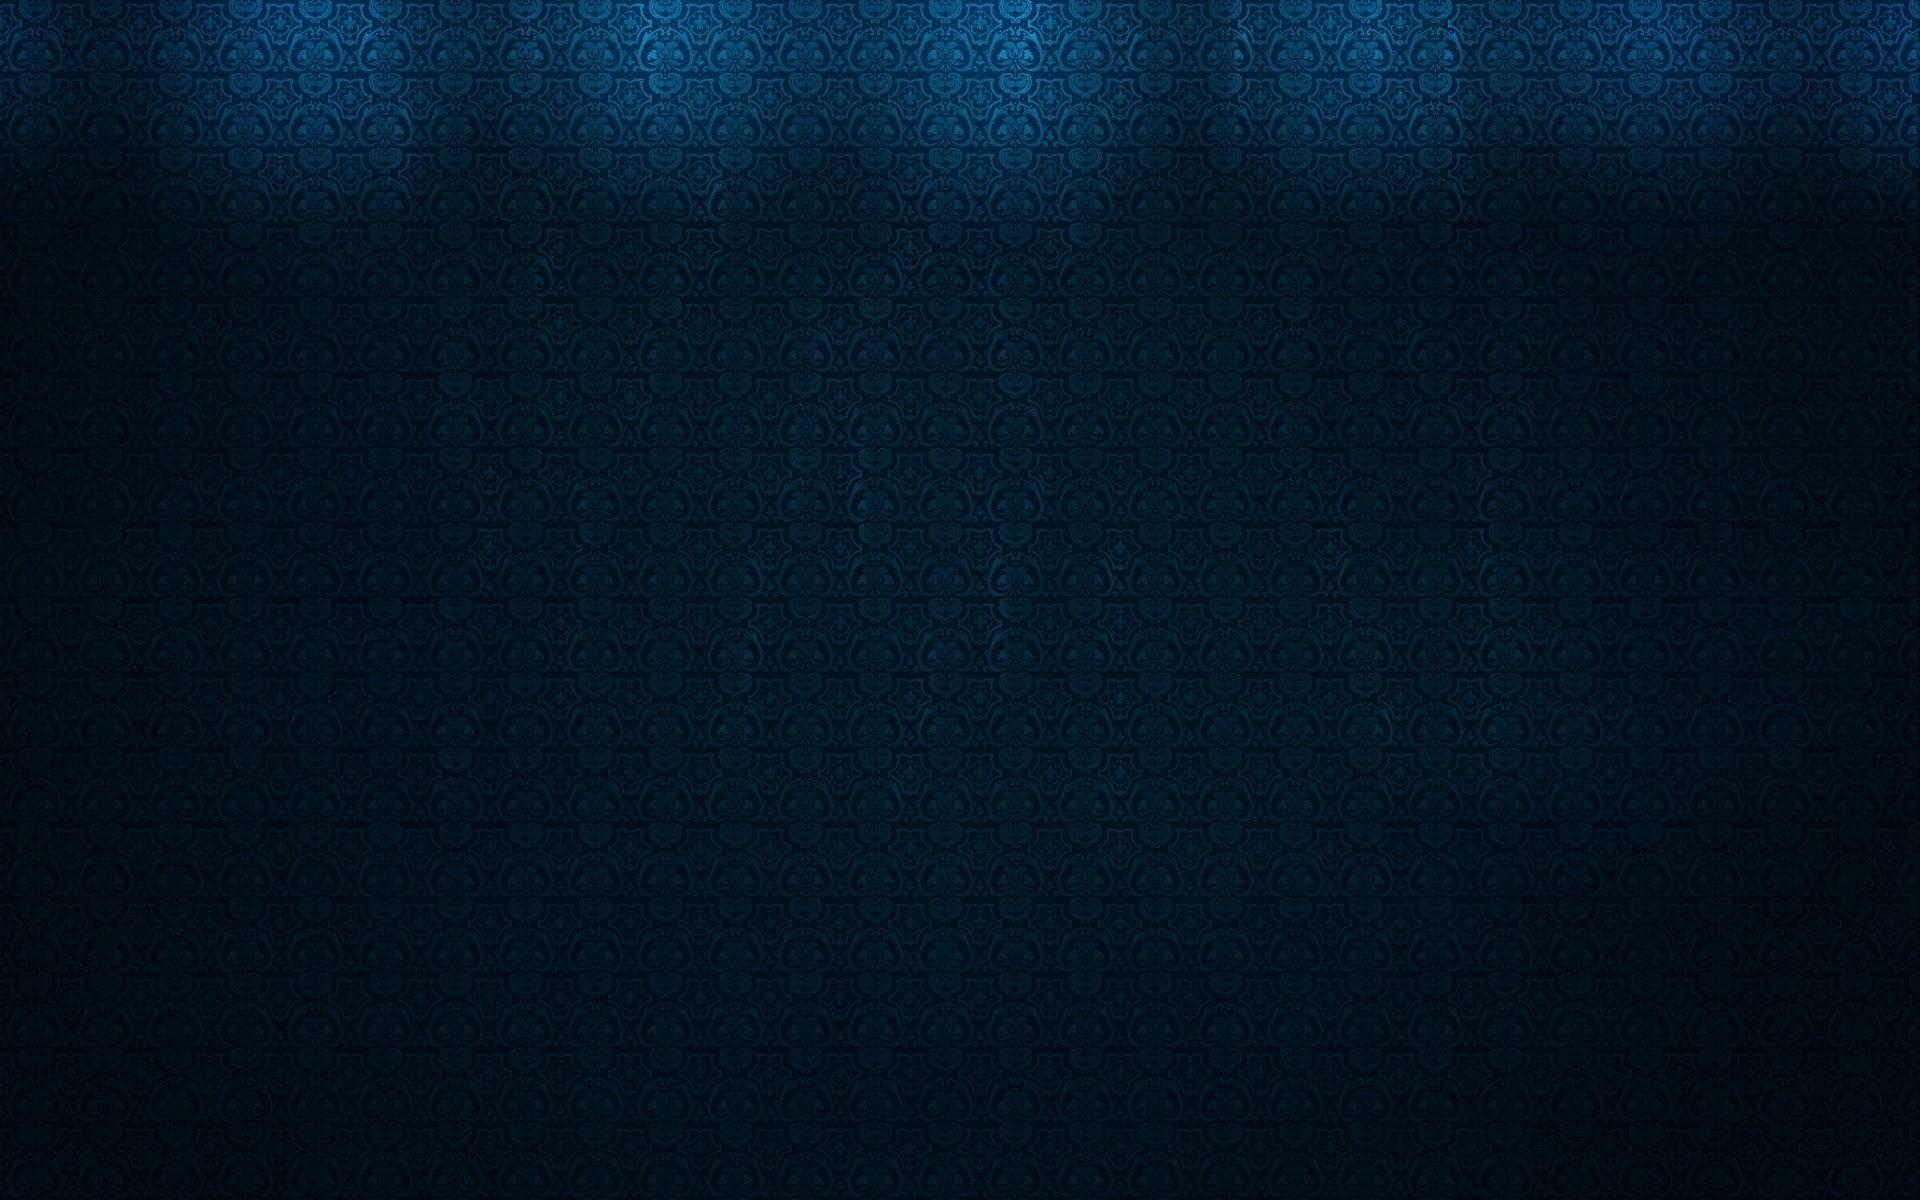 Damask Pattern On Dark Textured Blue Backgrounds Wallpapers